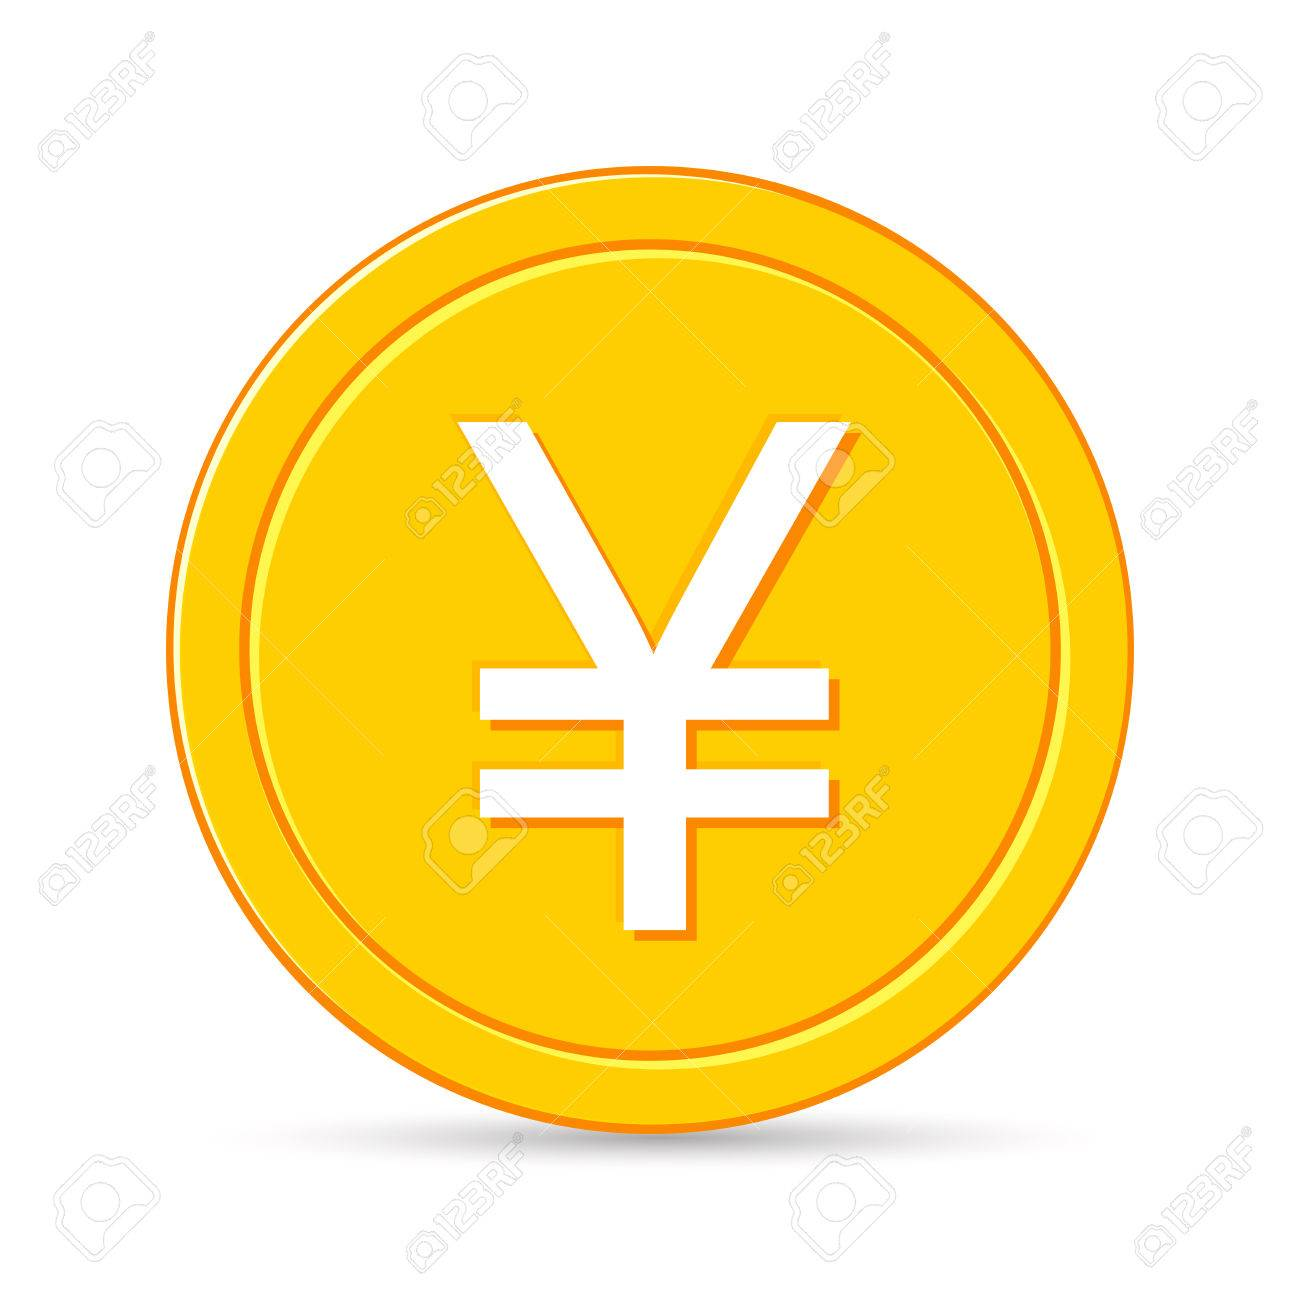 Japanese yen or chinese yuan currency symbol royalty free cliparts japanese yen or chinese yuan currency symbol stock vector 62127594 biocorpaavc